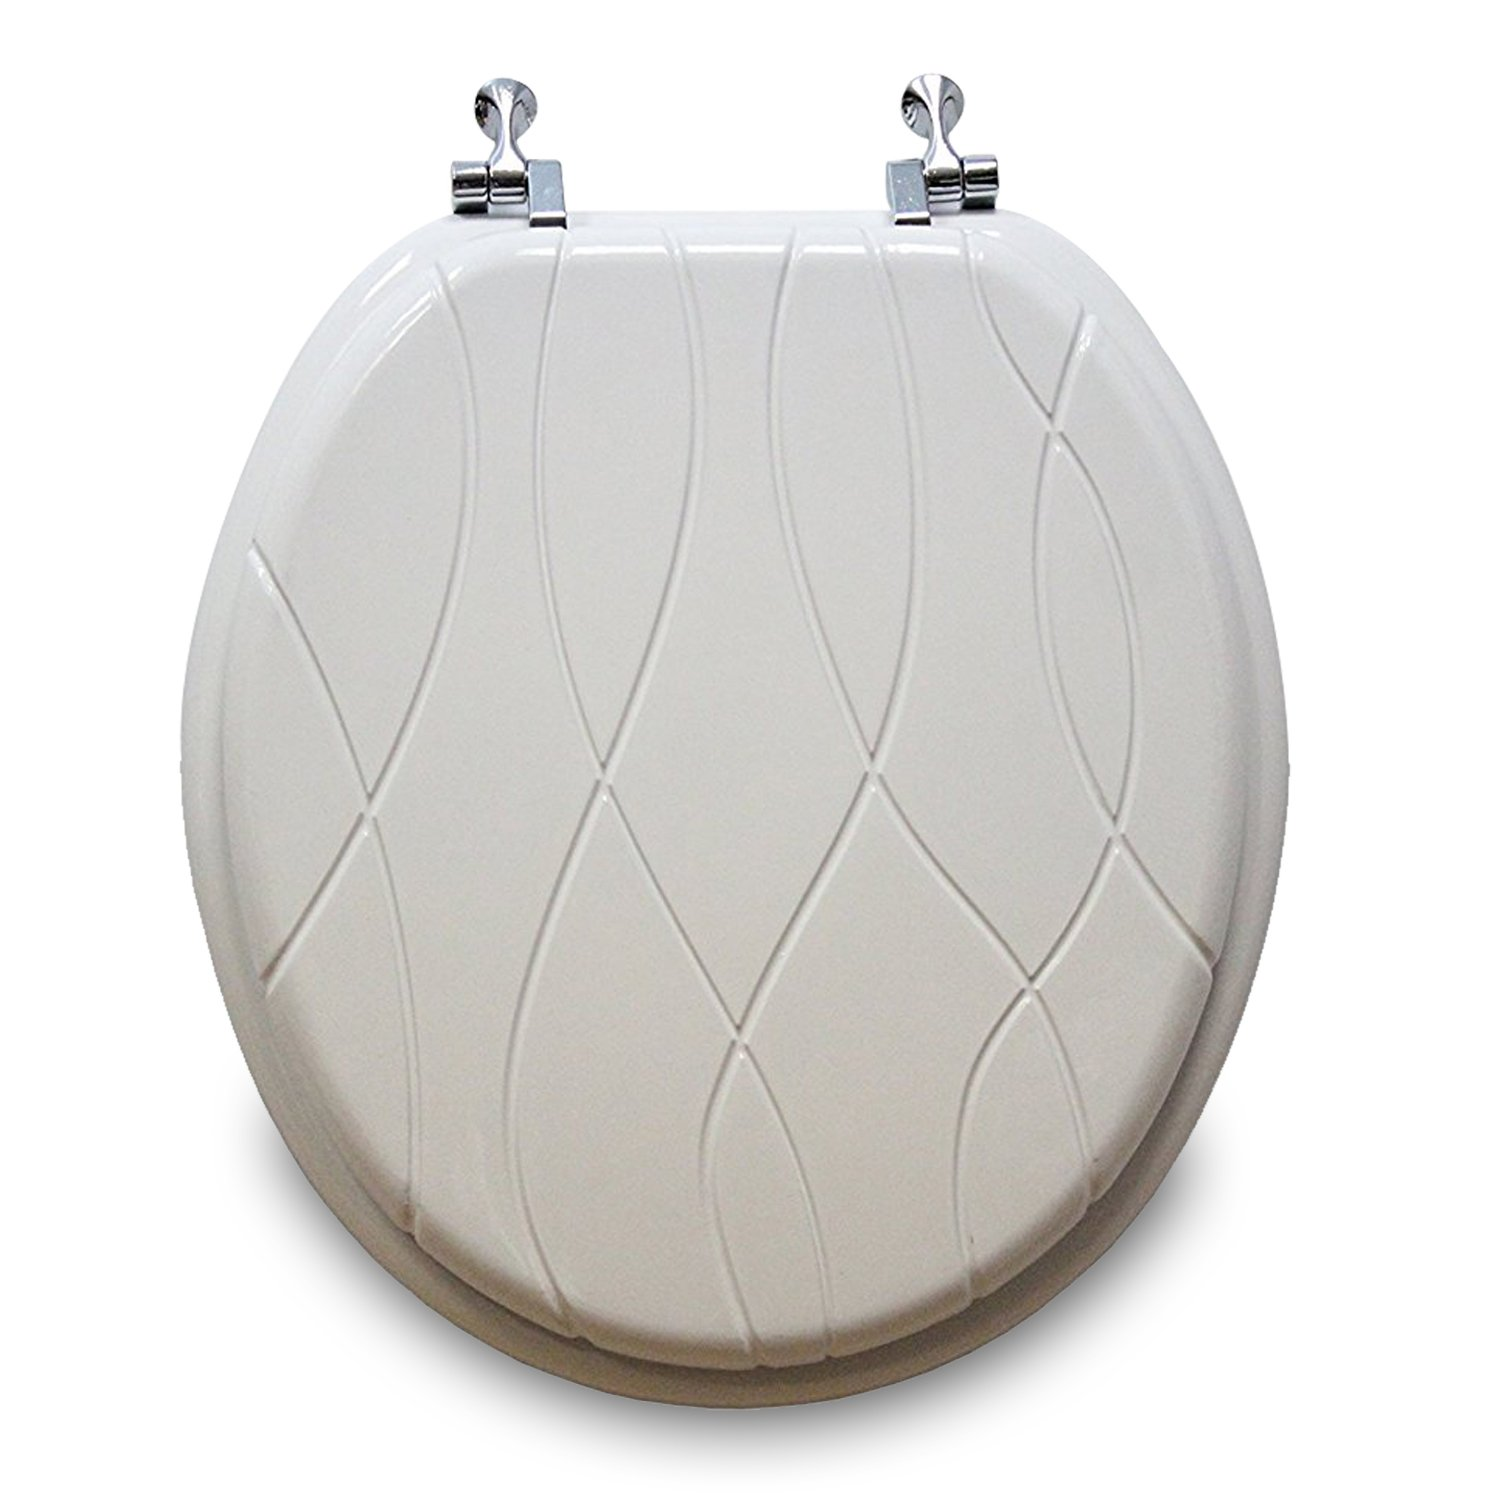 Trimmer Engraved Criss Cross Design Wood Toilet Seat, White.